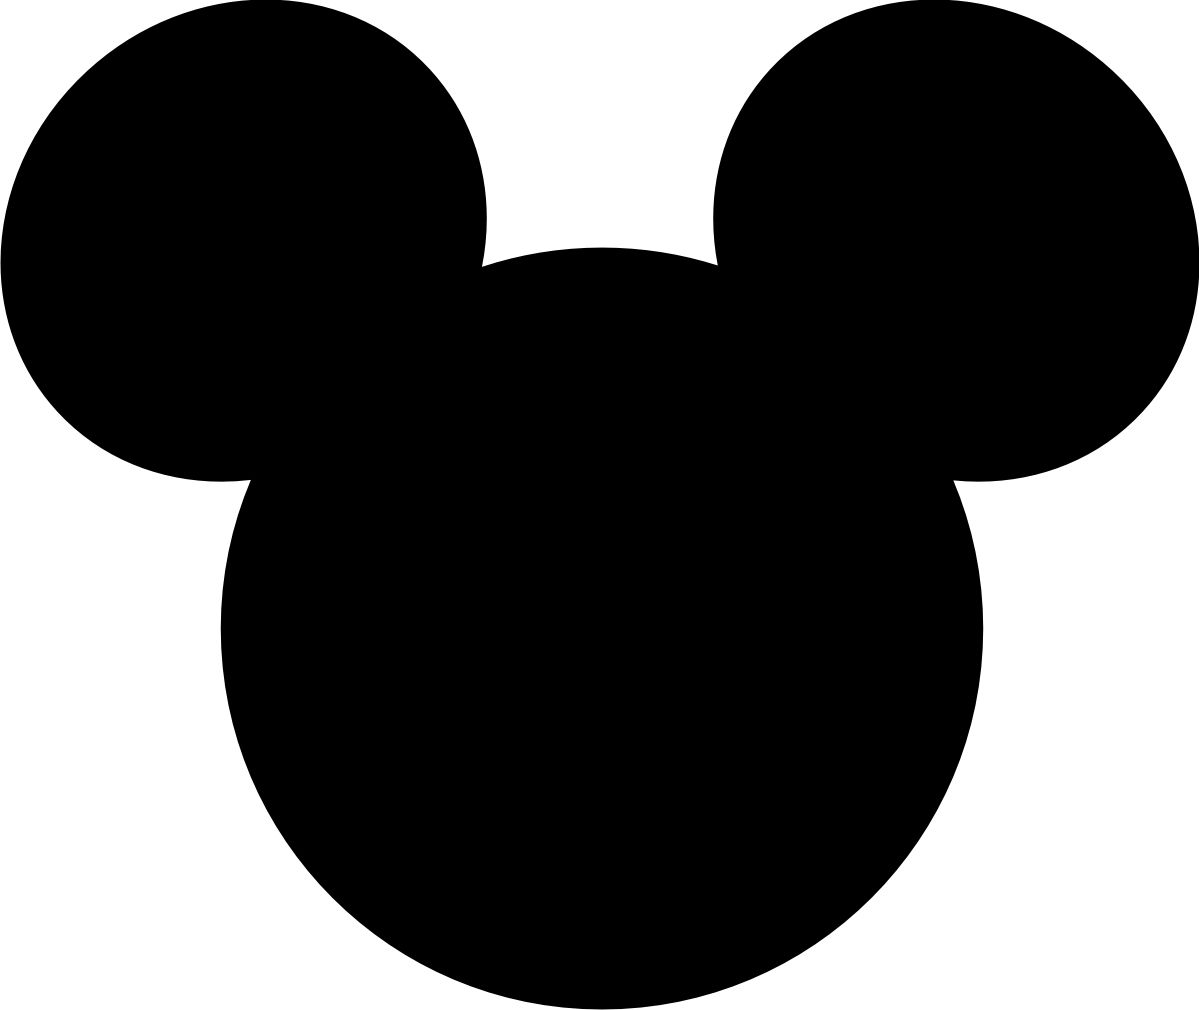 Fabulous image intended for mickey mouse head printable cutouts